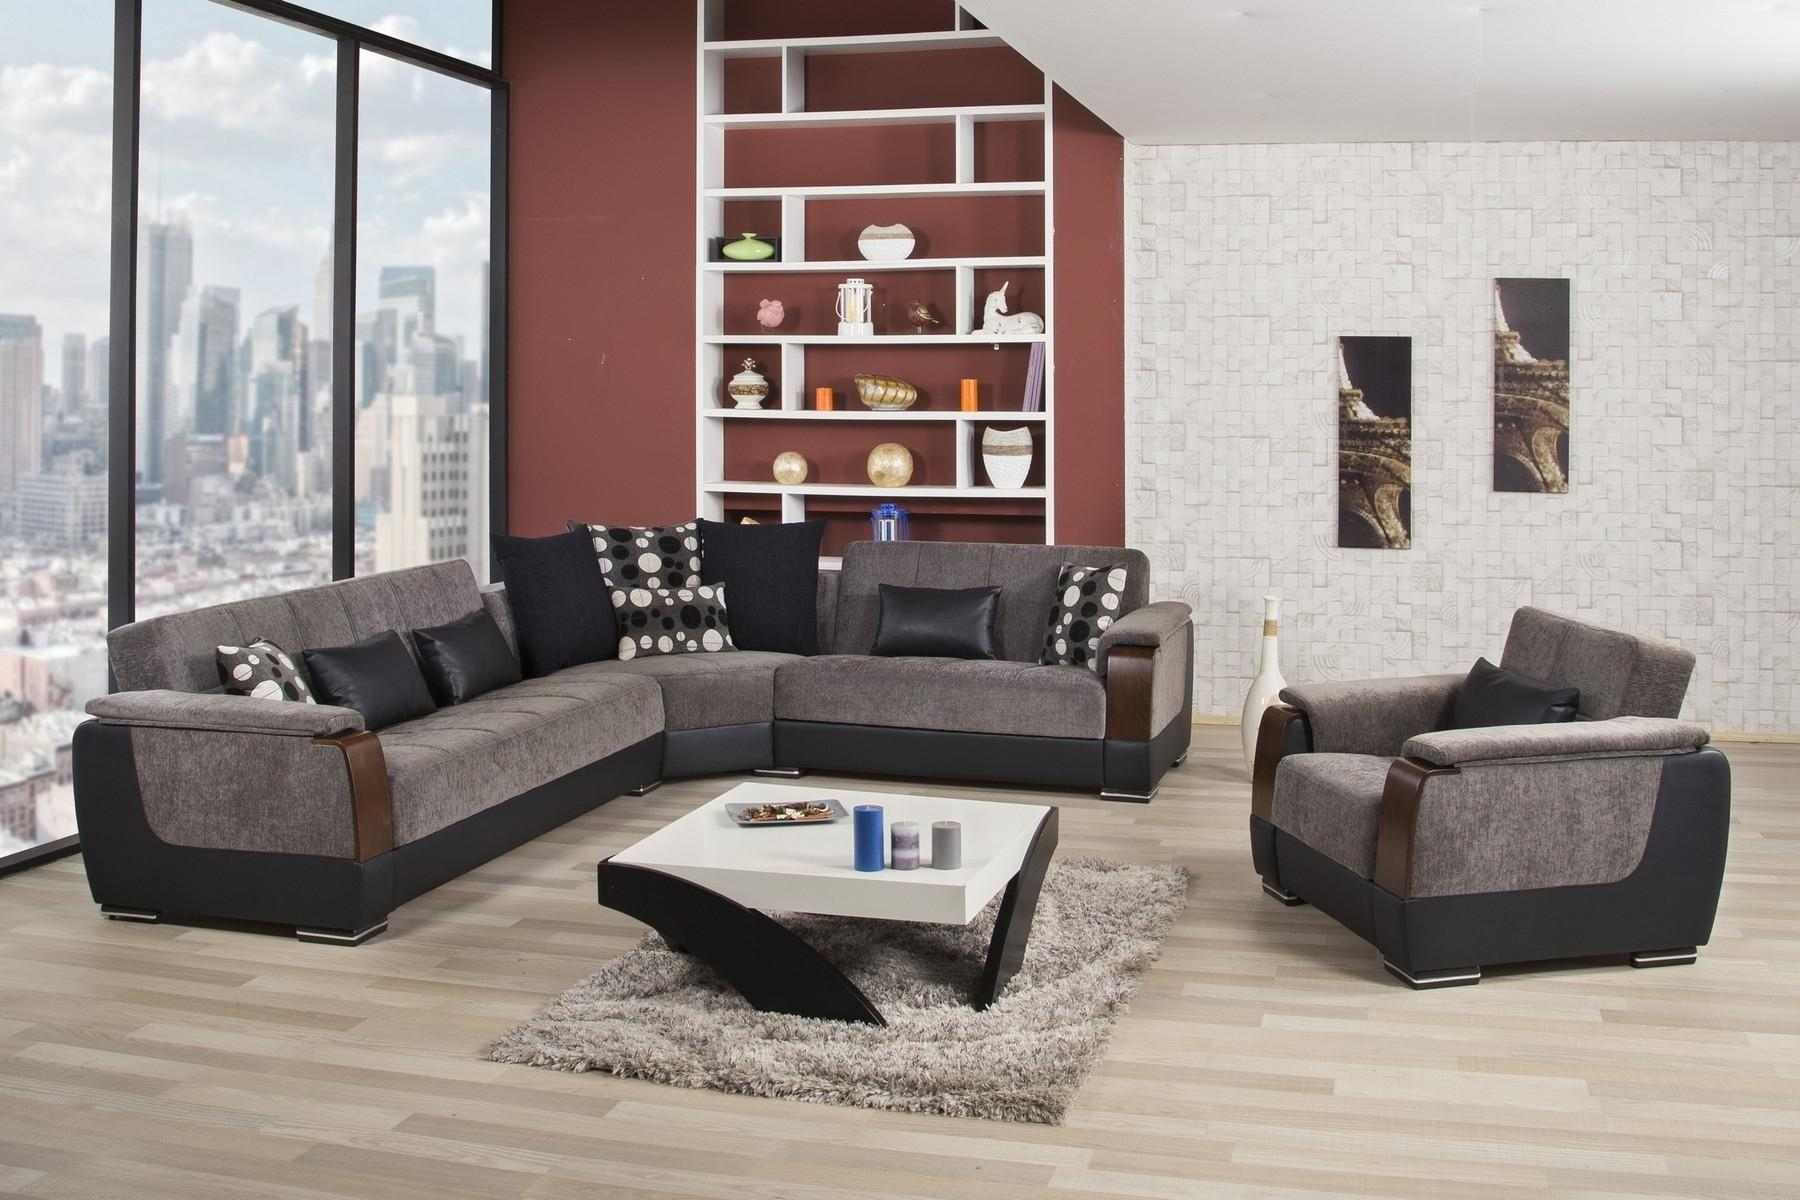 Living Room : Pit Sectional Charcoal Sectionals On Sale Couch For With Regard To Pit Sofas (Image 9 of 20)